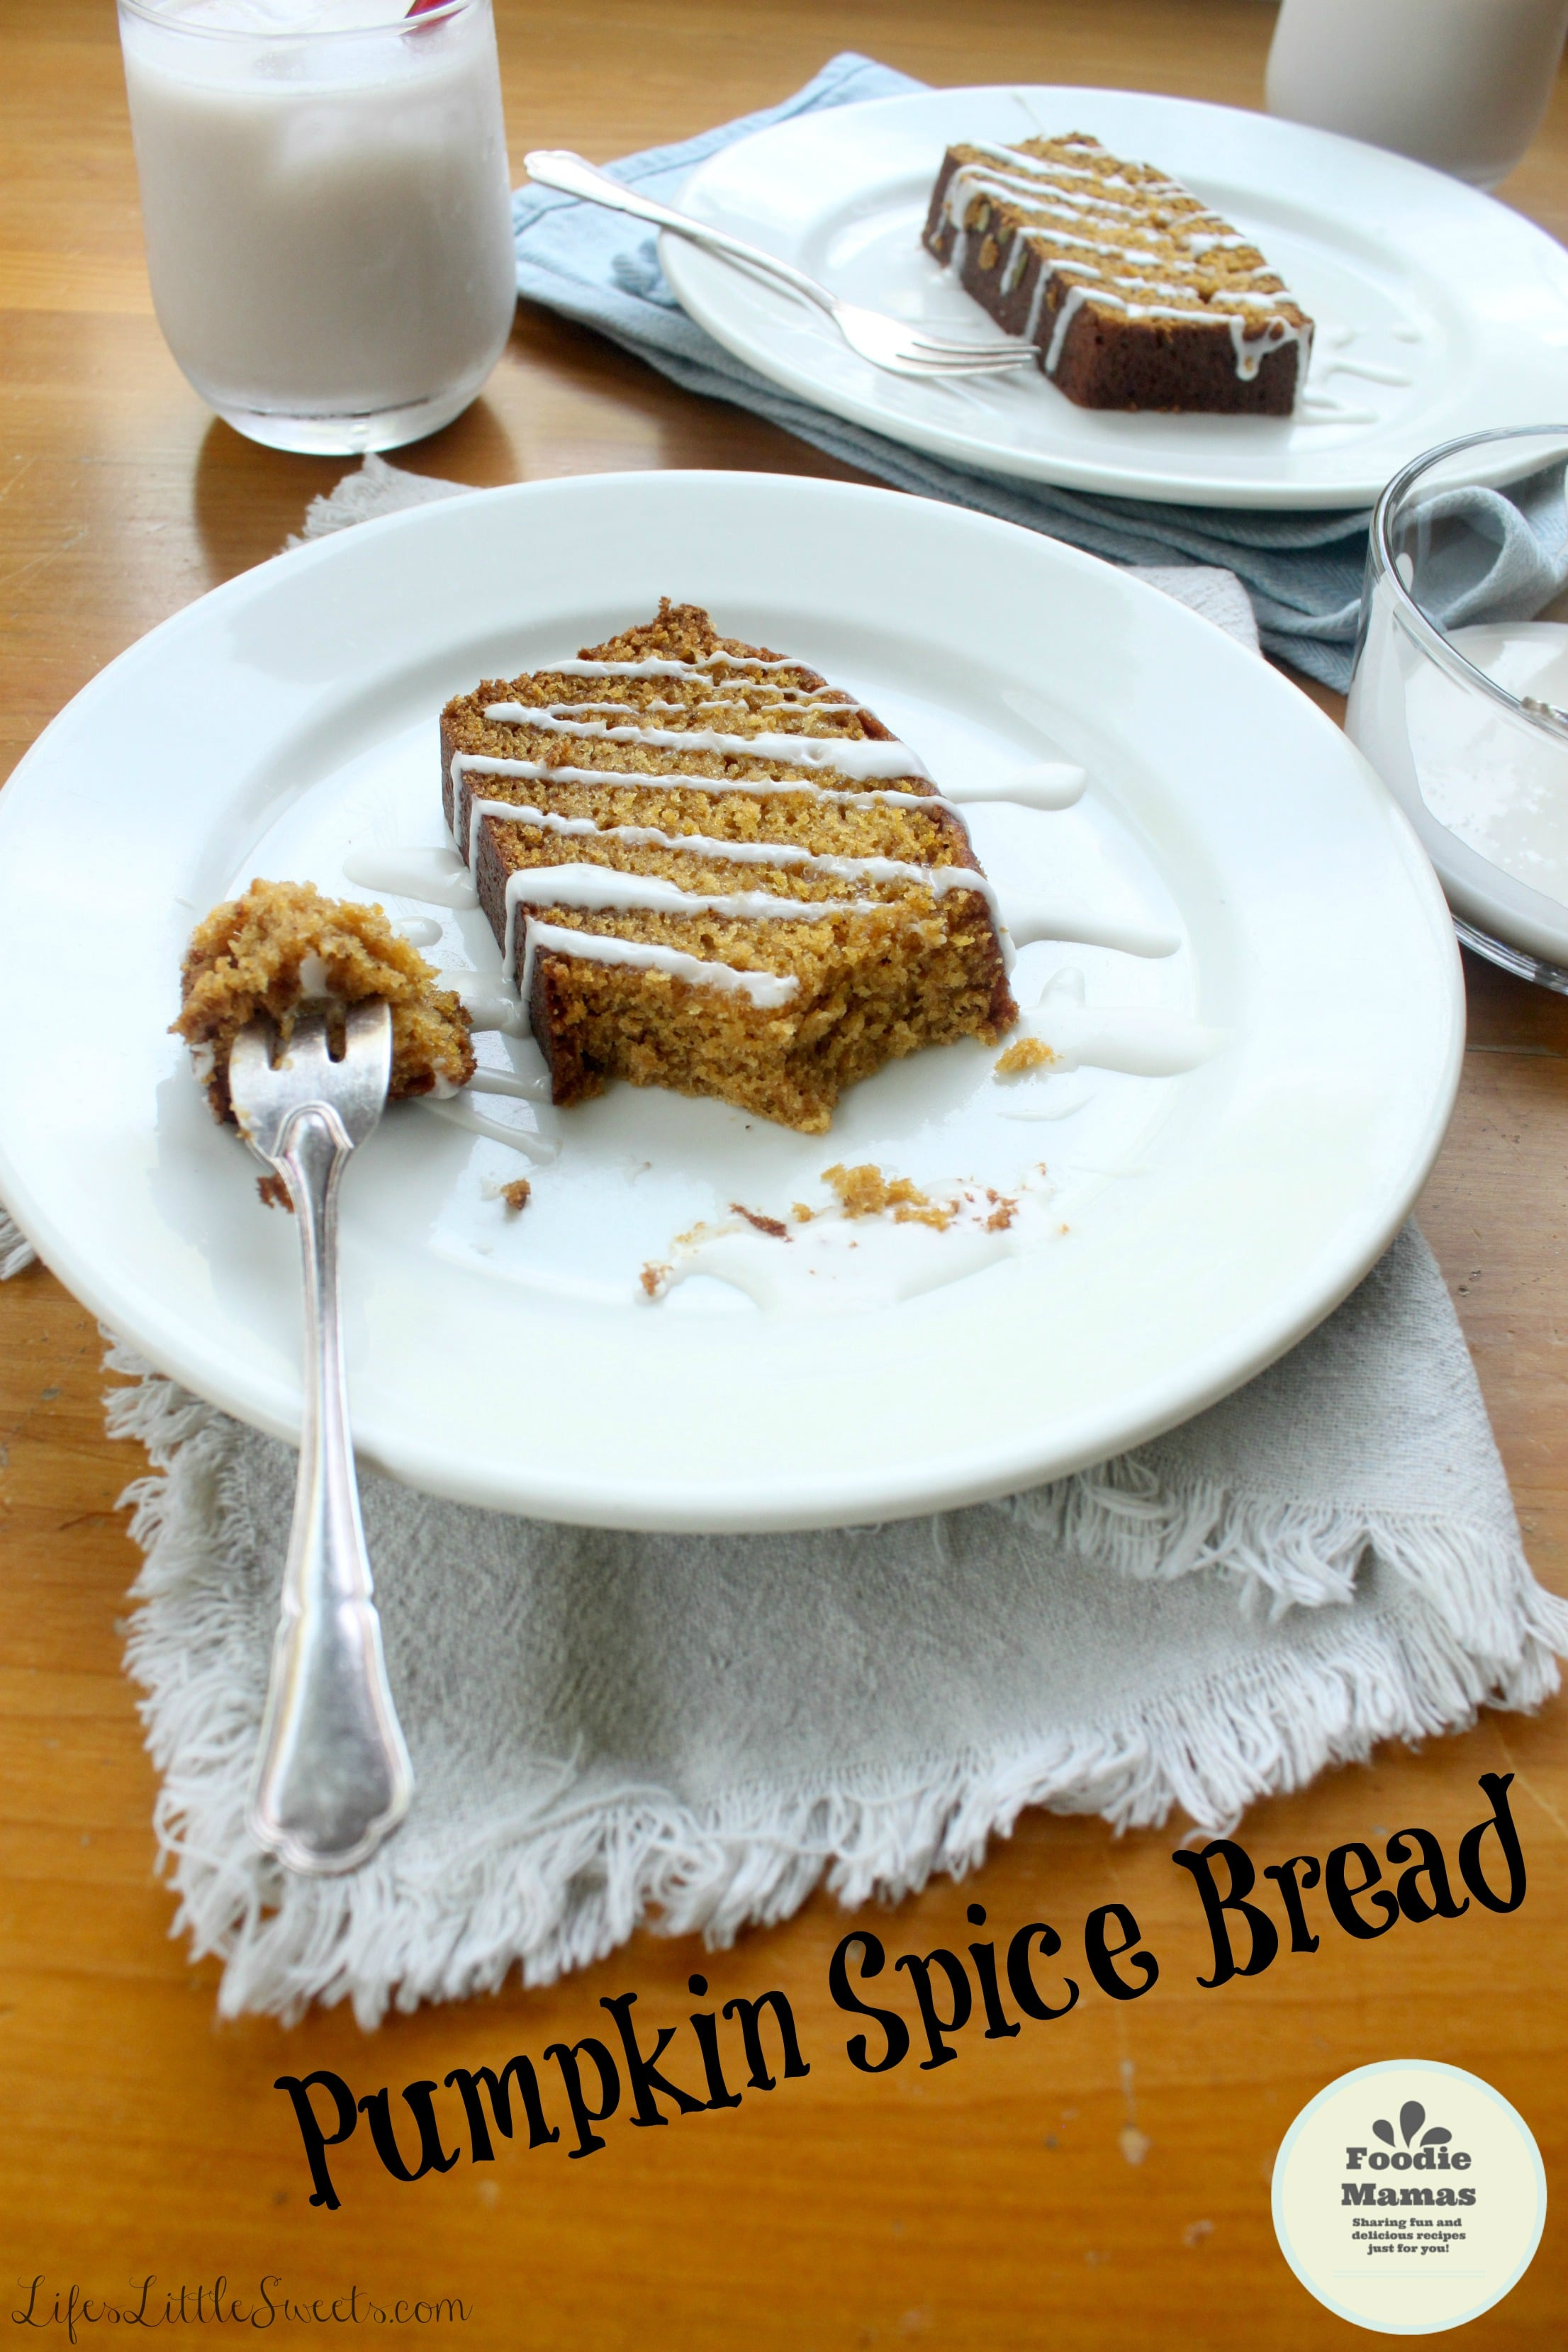 Pumpkin Spice Bread - Life's Little Sweets